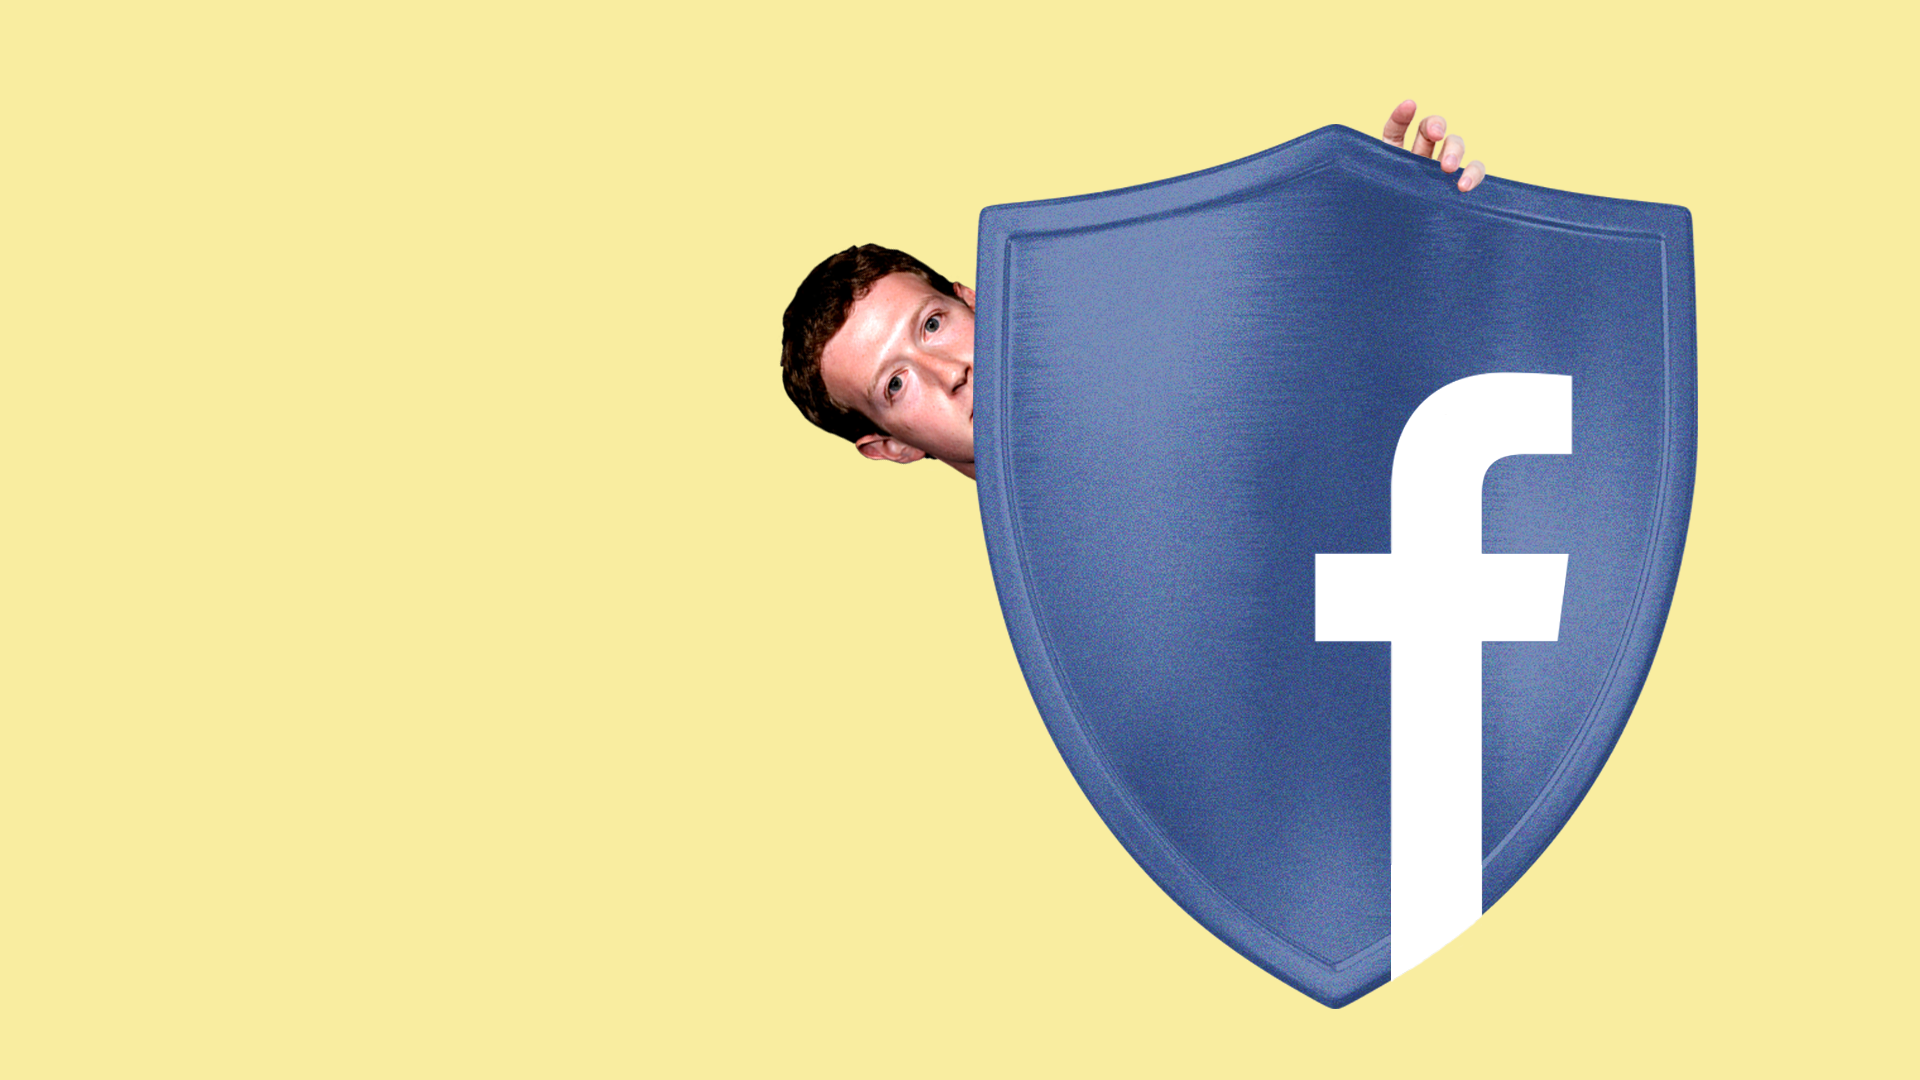 Mark Zuckerberg peeks out of a Facebook security shield